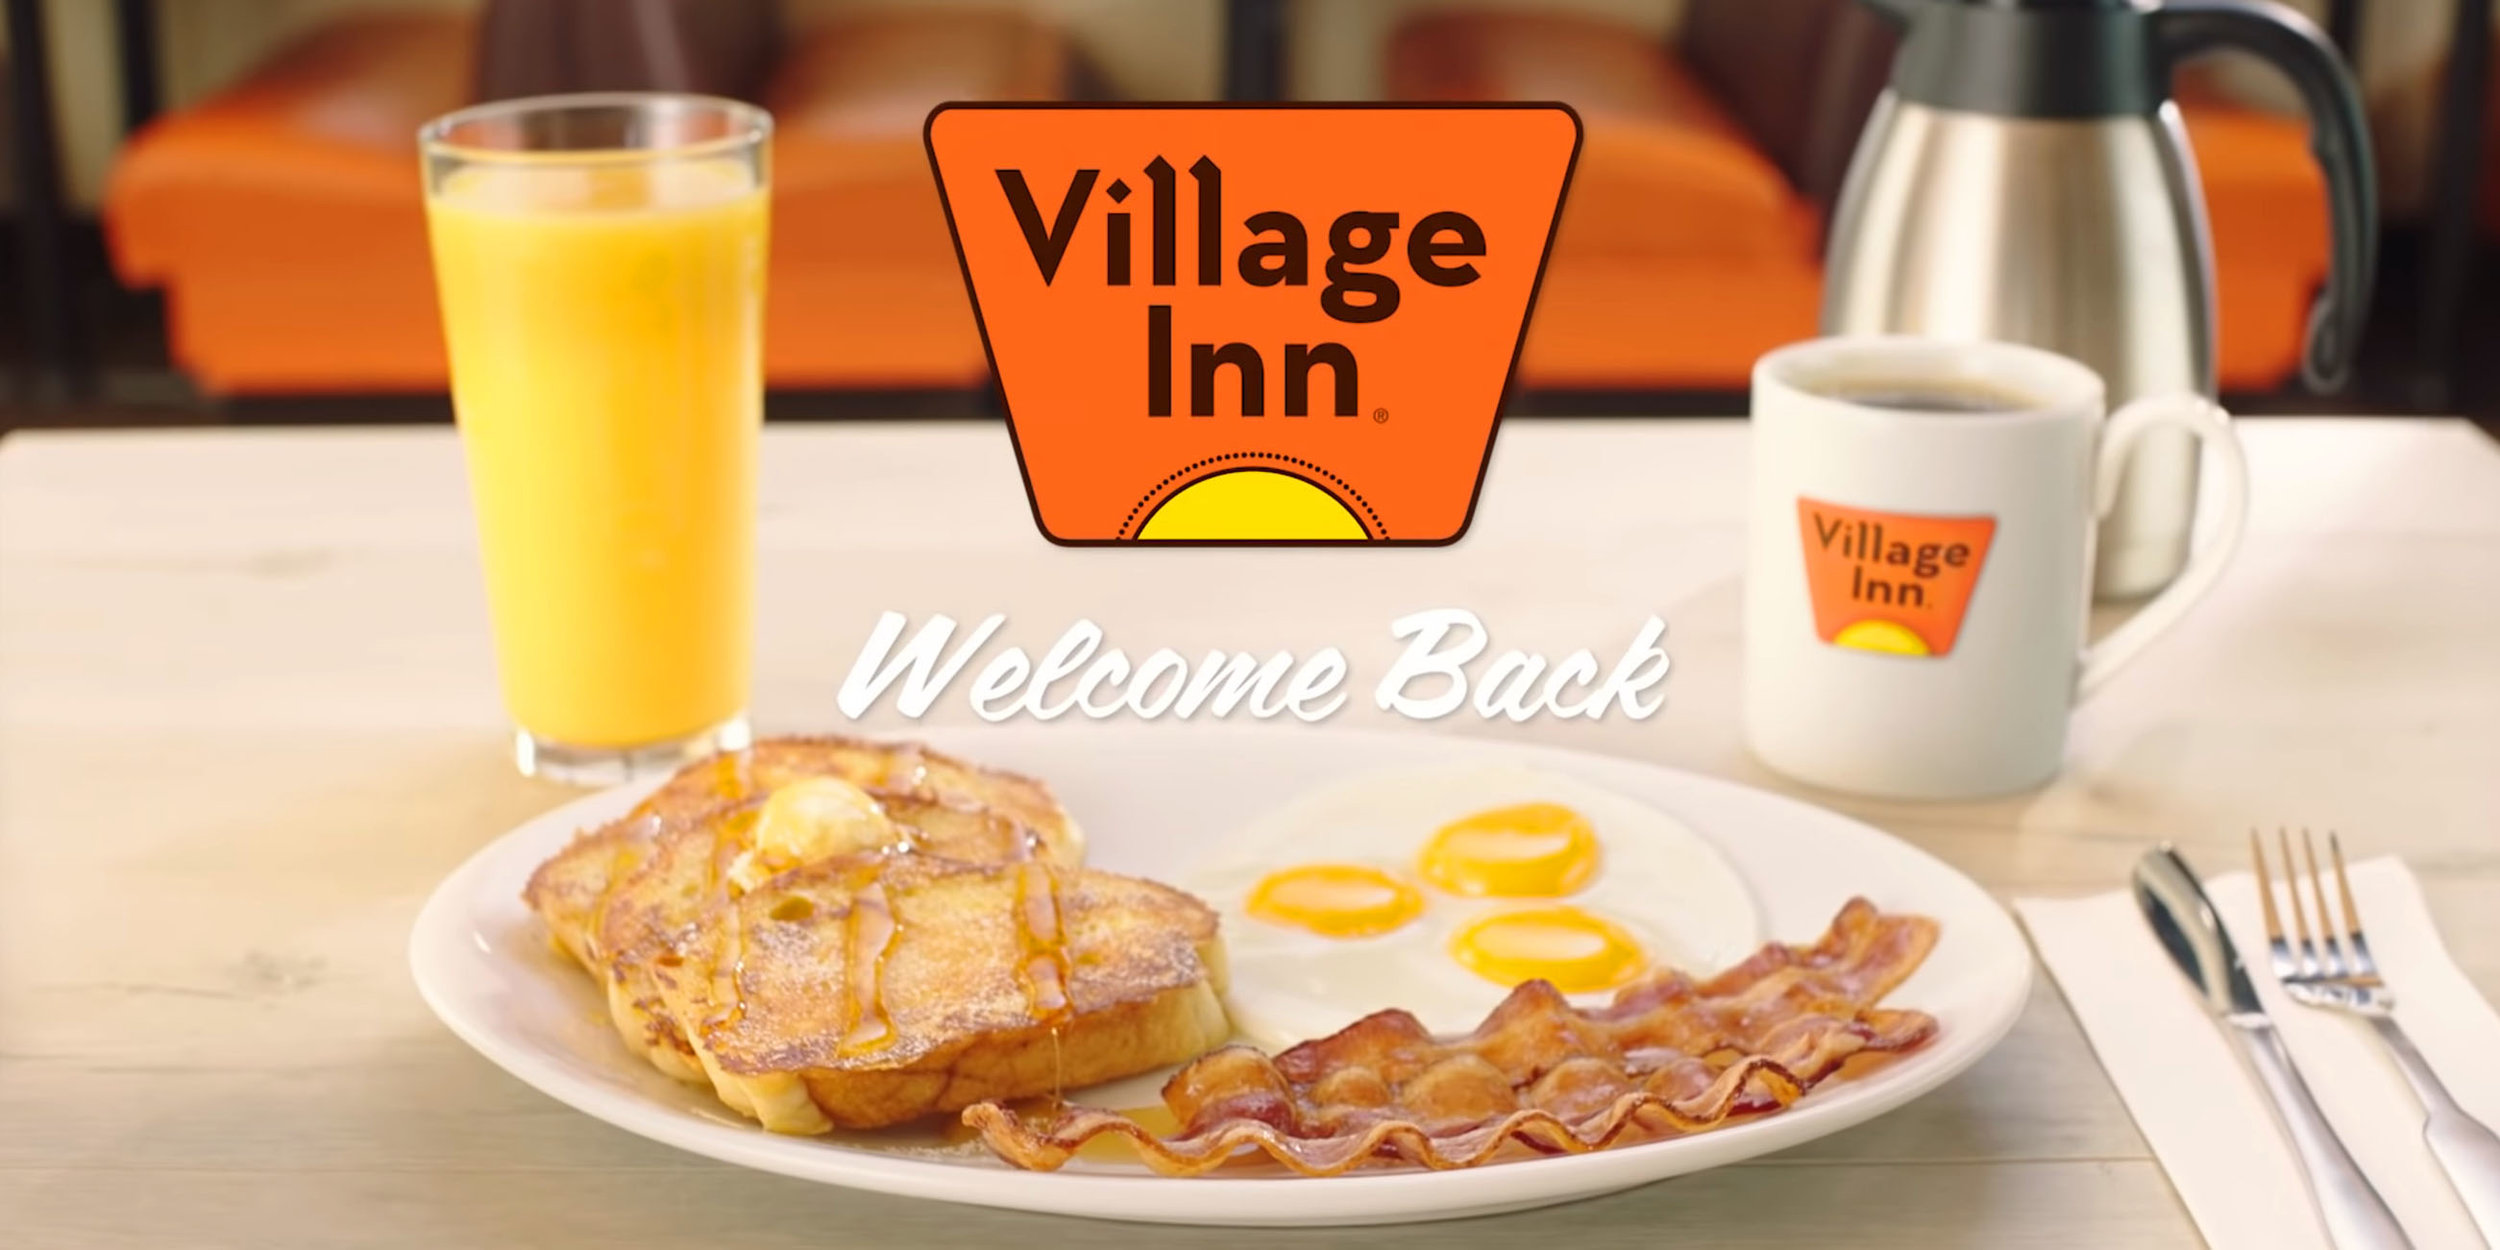 Village_inn_Tag.jpg